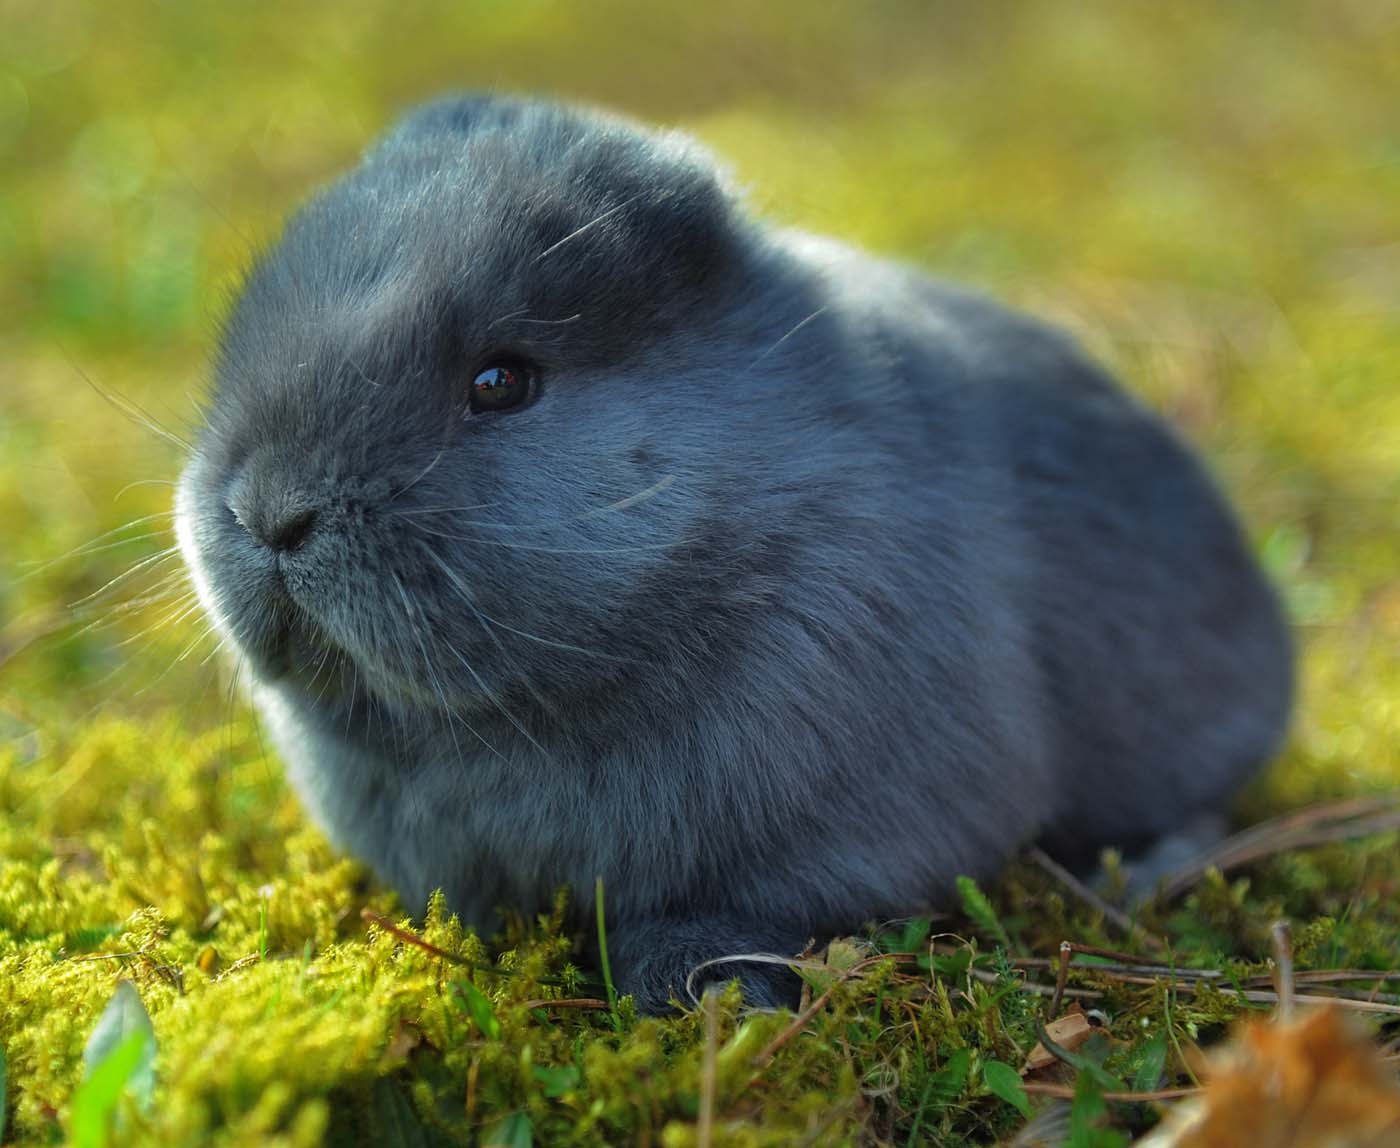 A Four-week-old blue Viennese rabbit with no ears is seen, in Niederdorf, eastern Germany March 2012. (Wolfgang ThiemeAFP/Getty Images)